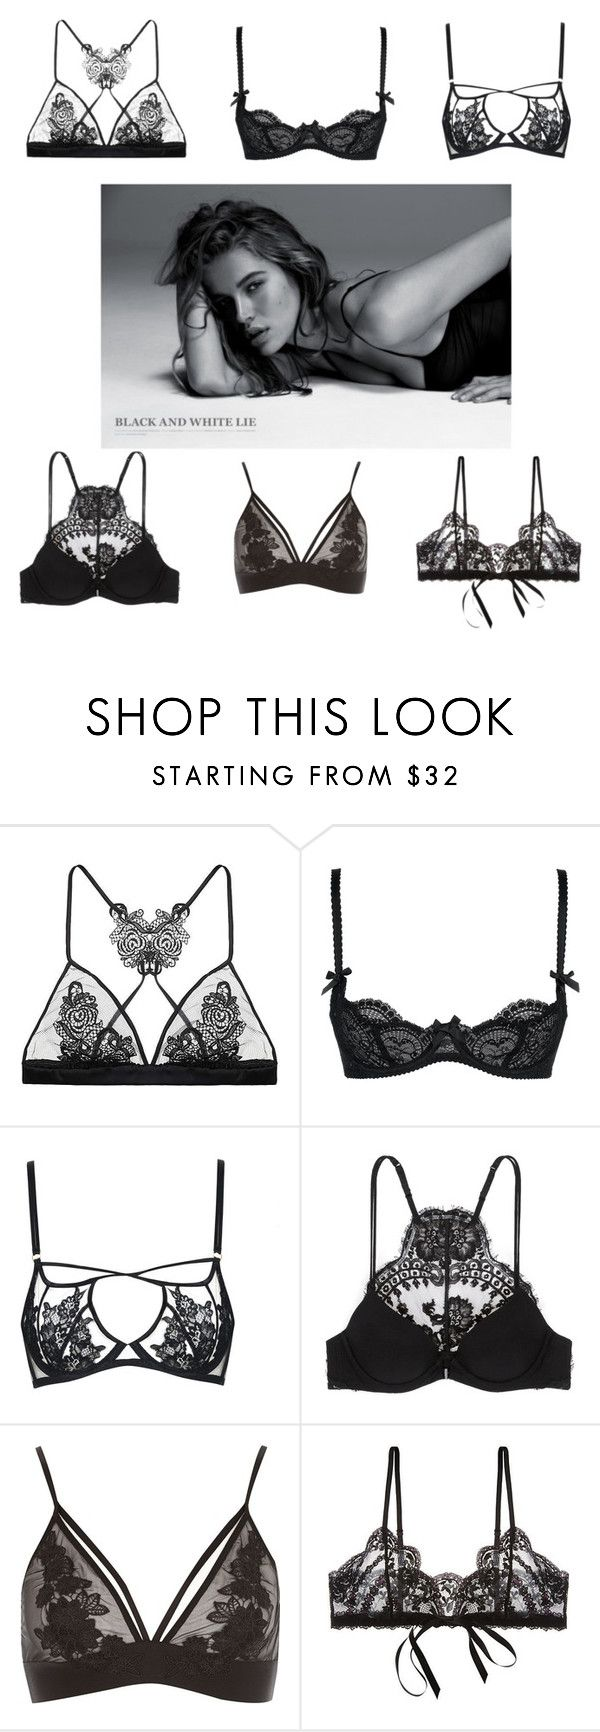 """Lingerie"" by gpalaz ❤ liked on Polyvore featuring Fleur of England, L'Agent By Agent Provocateur, Agent Provocateur, La Perla and Hanky Panky"